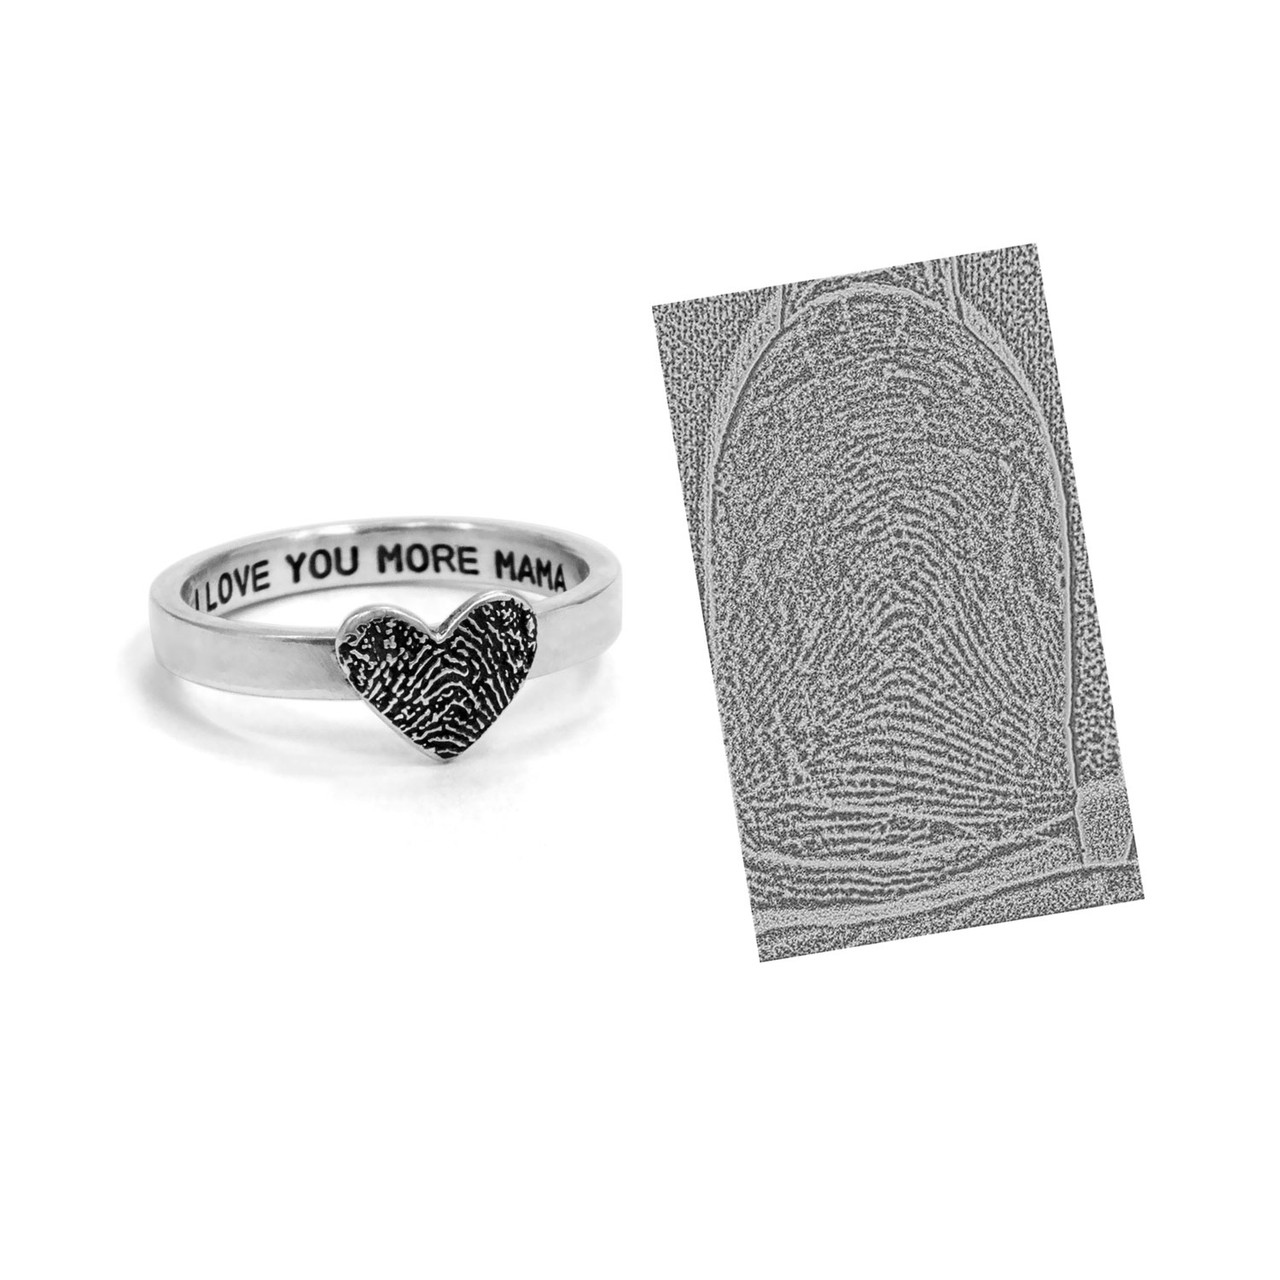 custom heart shaped fingerprint jewelry ring in sterling silver, shown on with original fingerprint